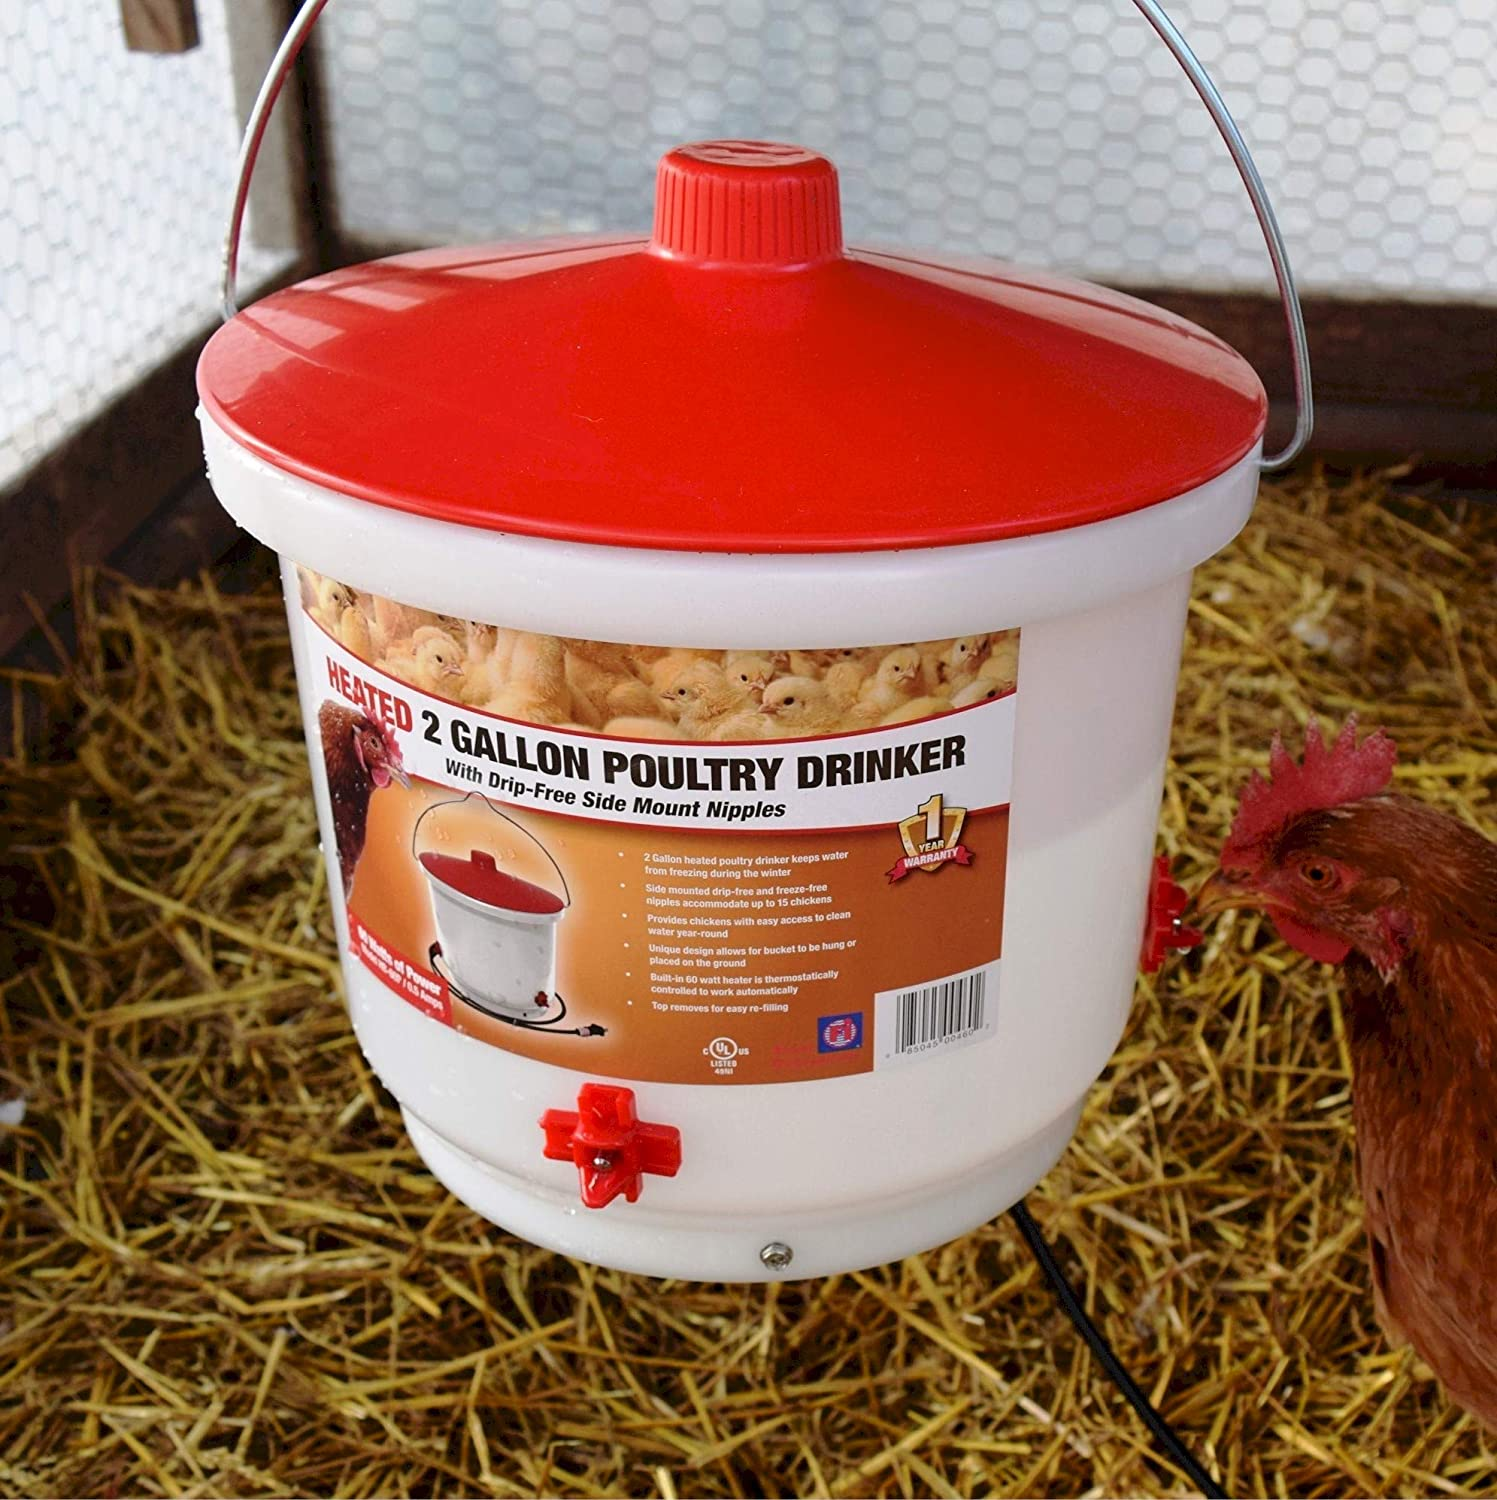 Farm Innovators Heated Poultry Fount